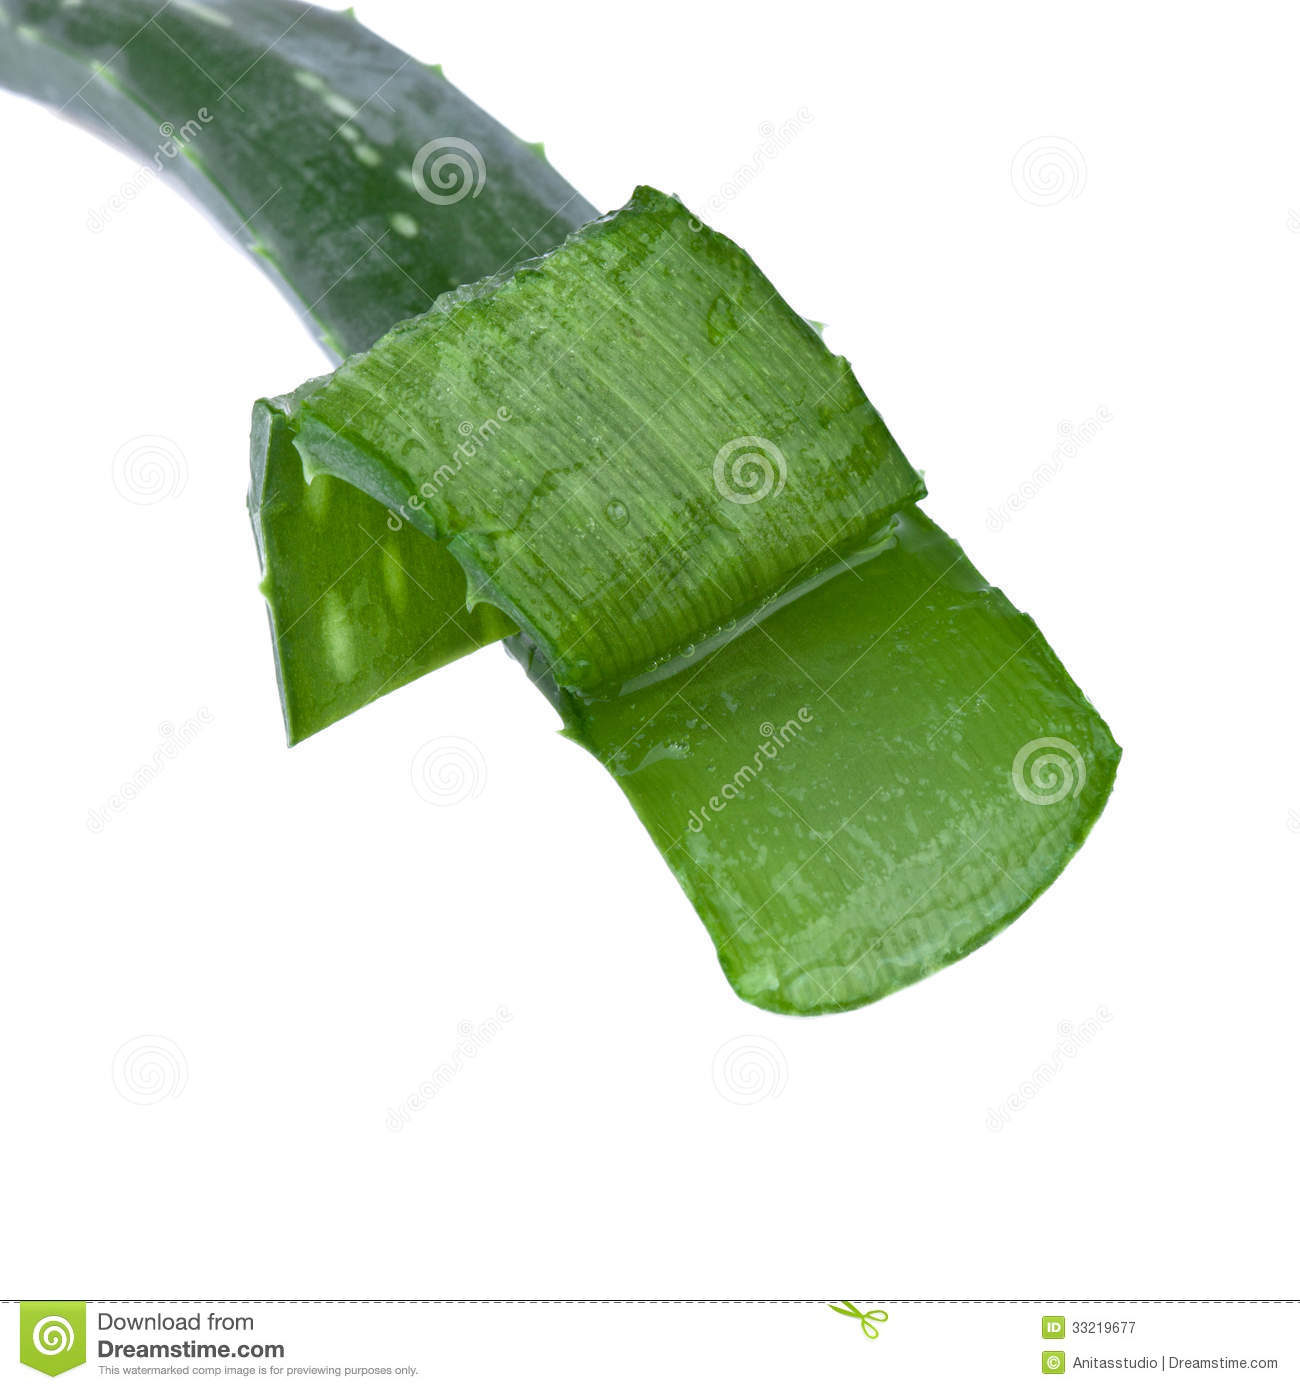 how to cut and replant aloe vera plant